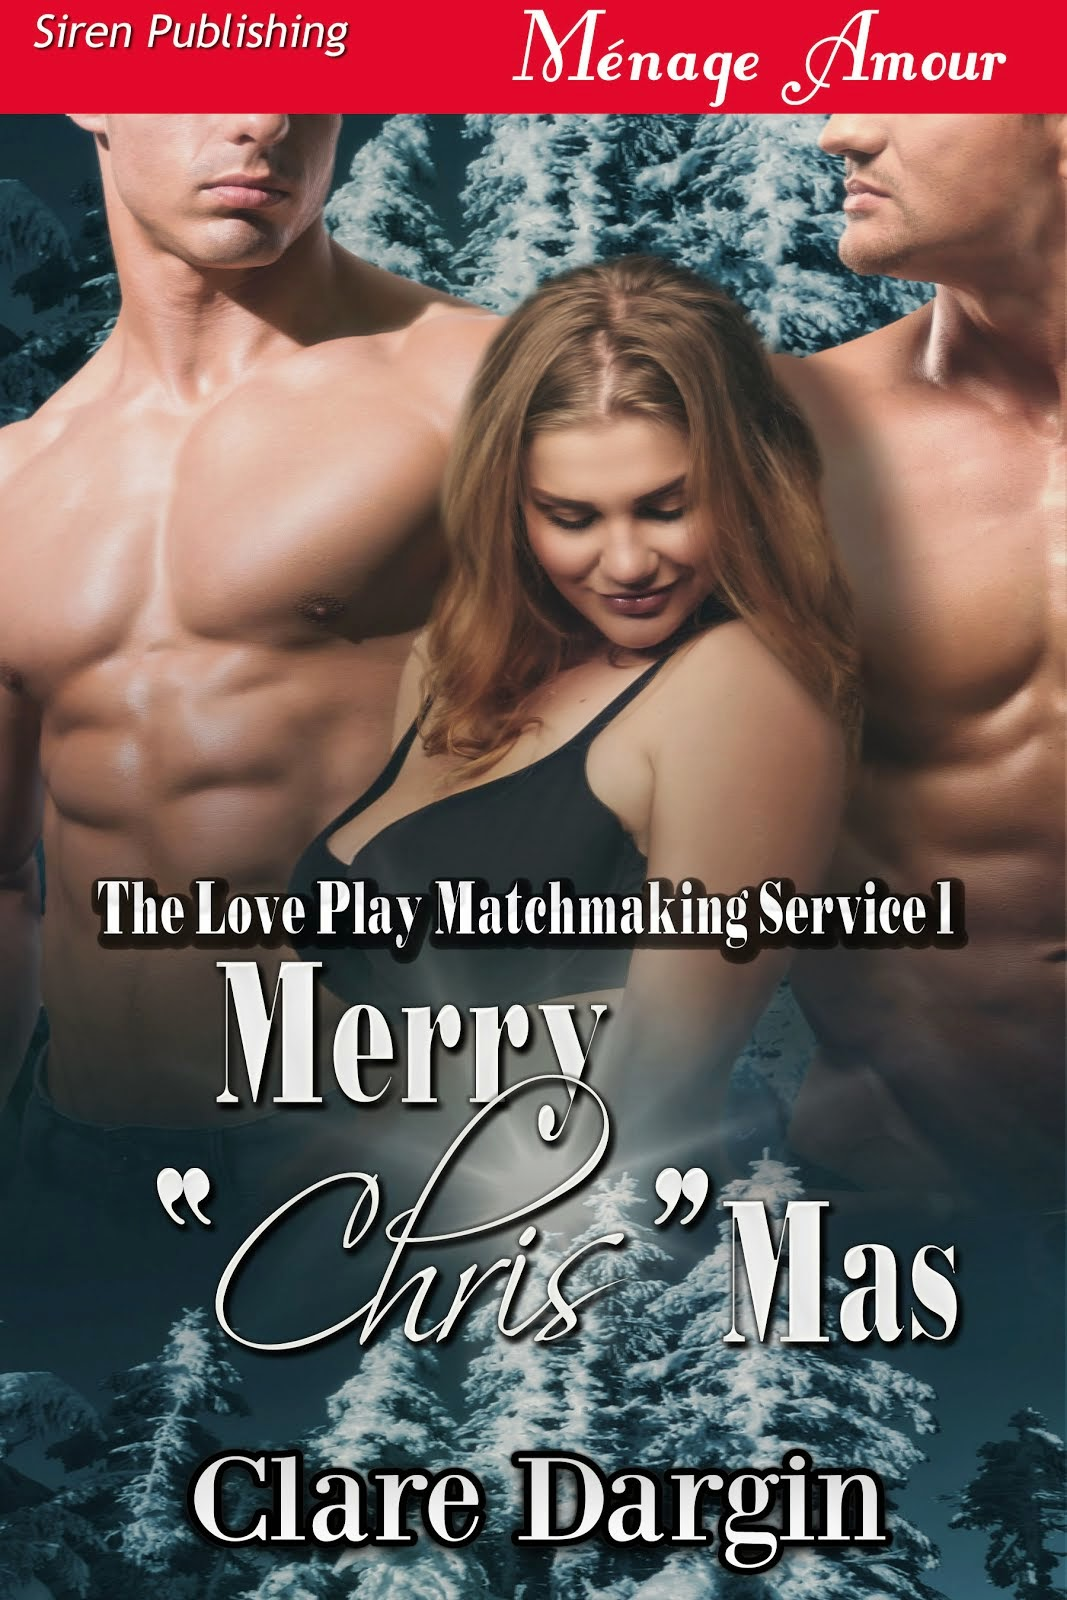 The Love Play Matchmaking Service Series